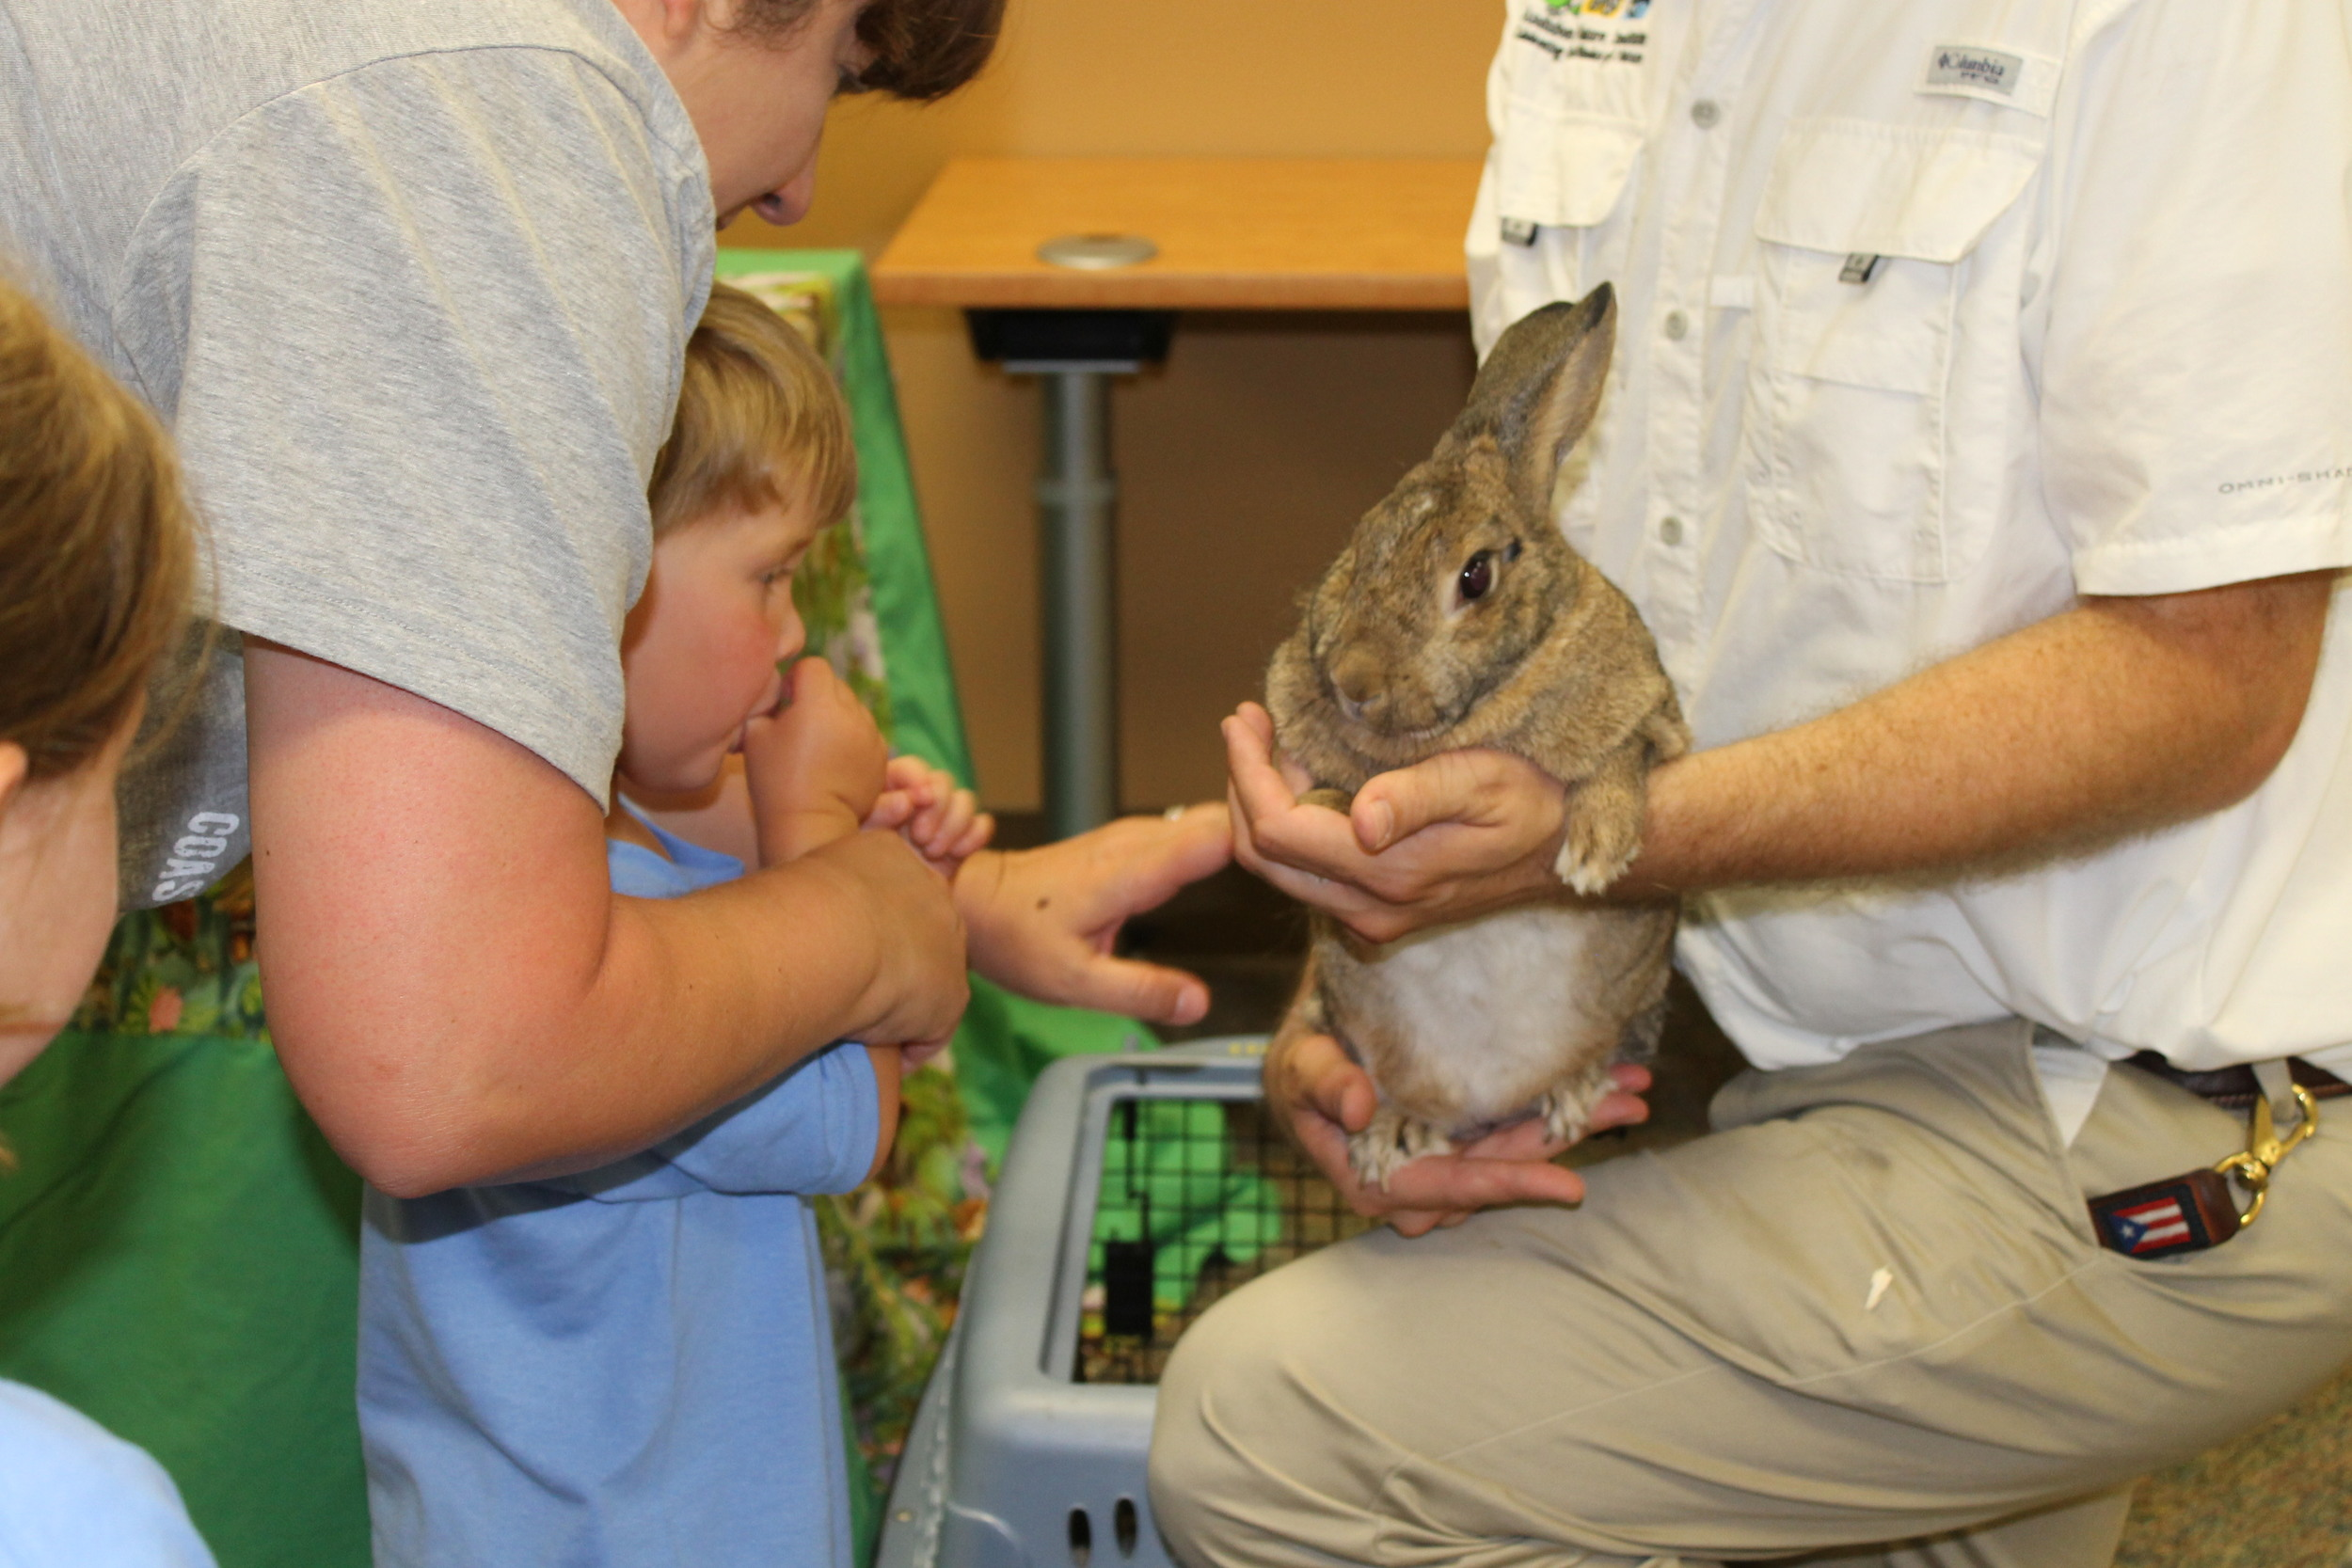 Petting the bunny